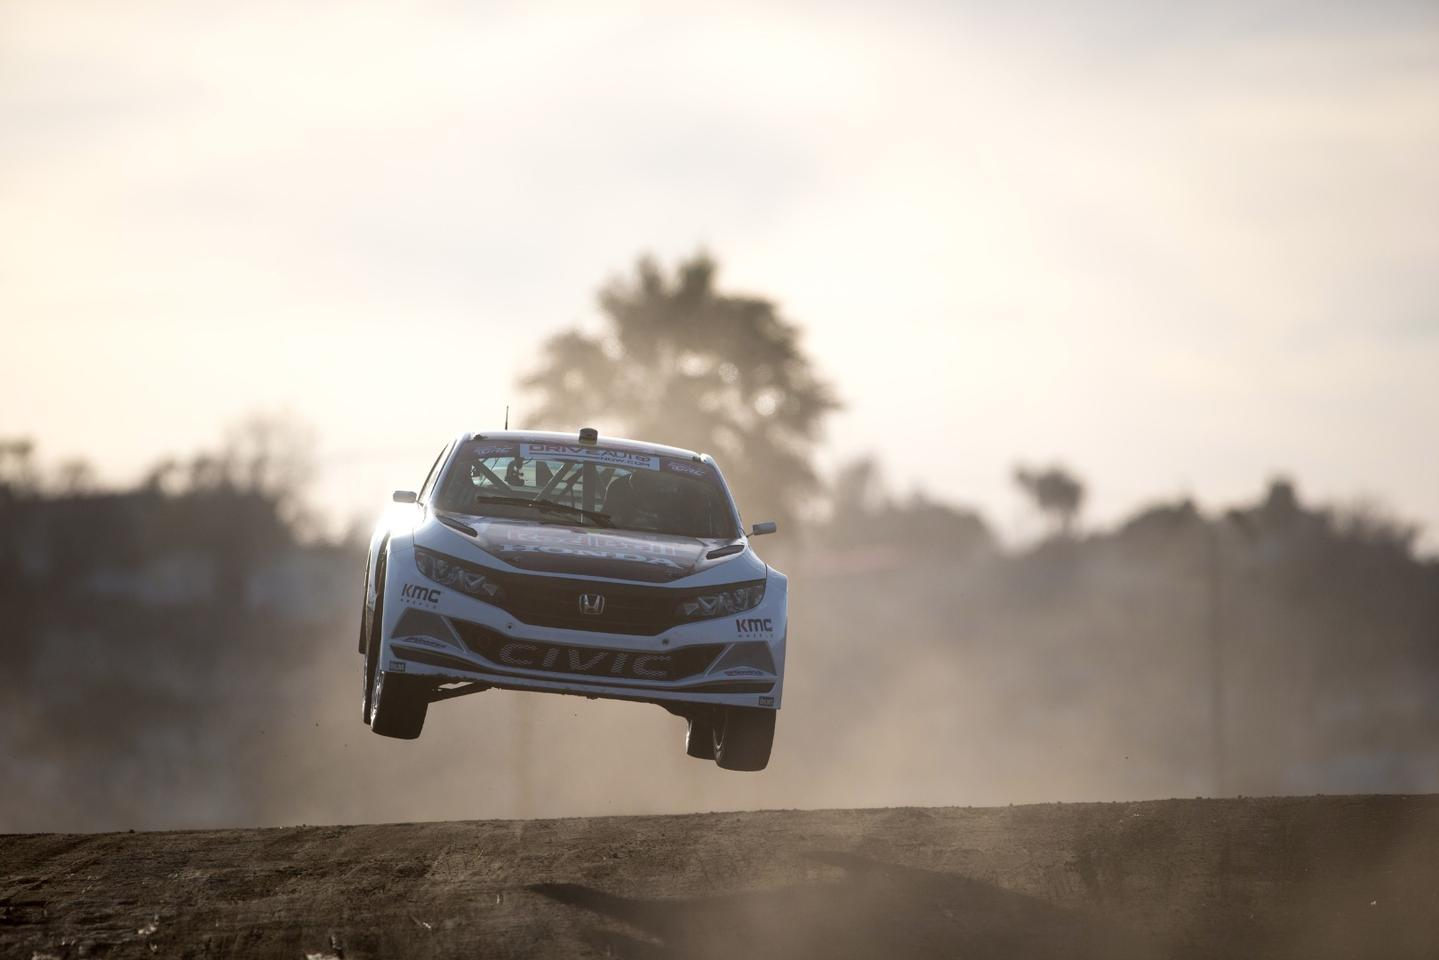 Red BullGlobal Rallycross will add an all-electric series to its line-up in 2018